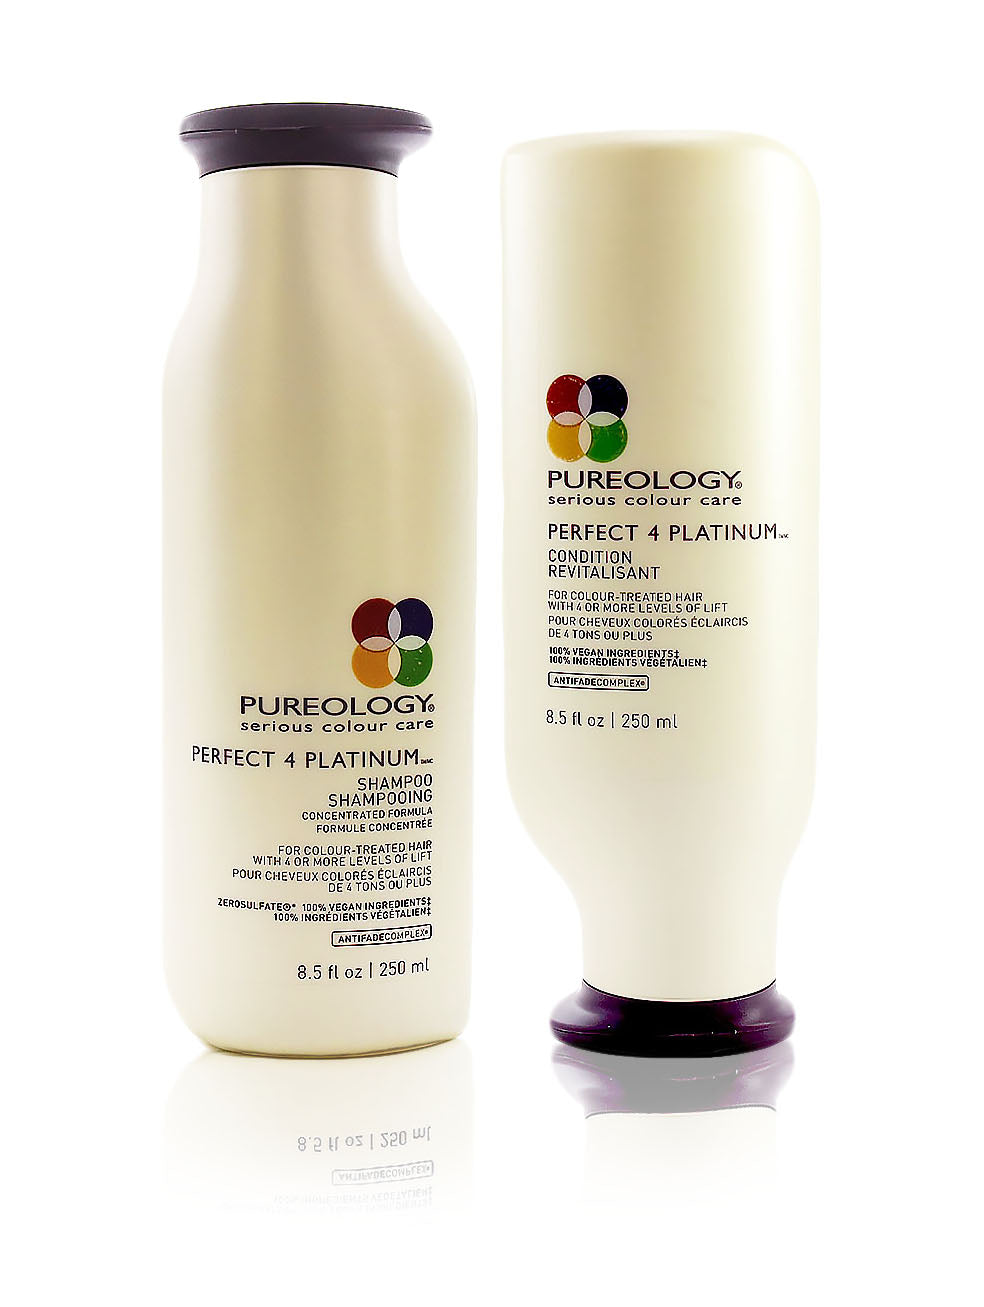 Pureology Platinum Shampoo and Conditioner Set 8.5 oz